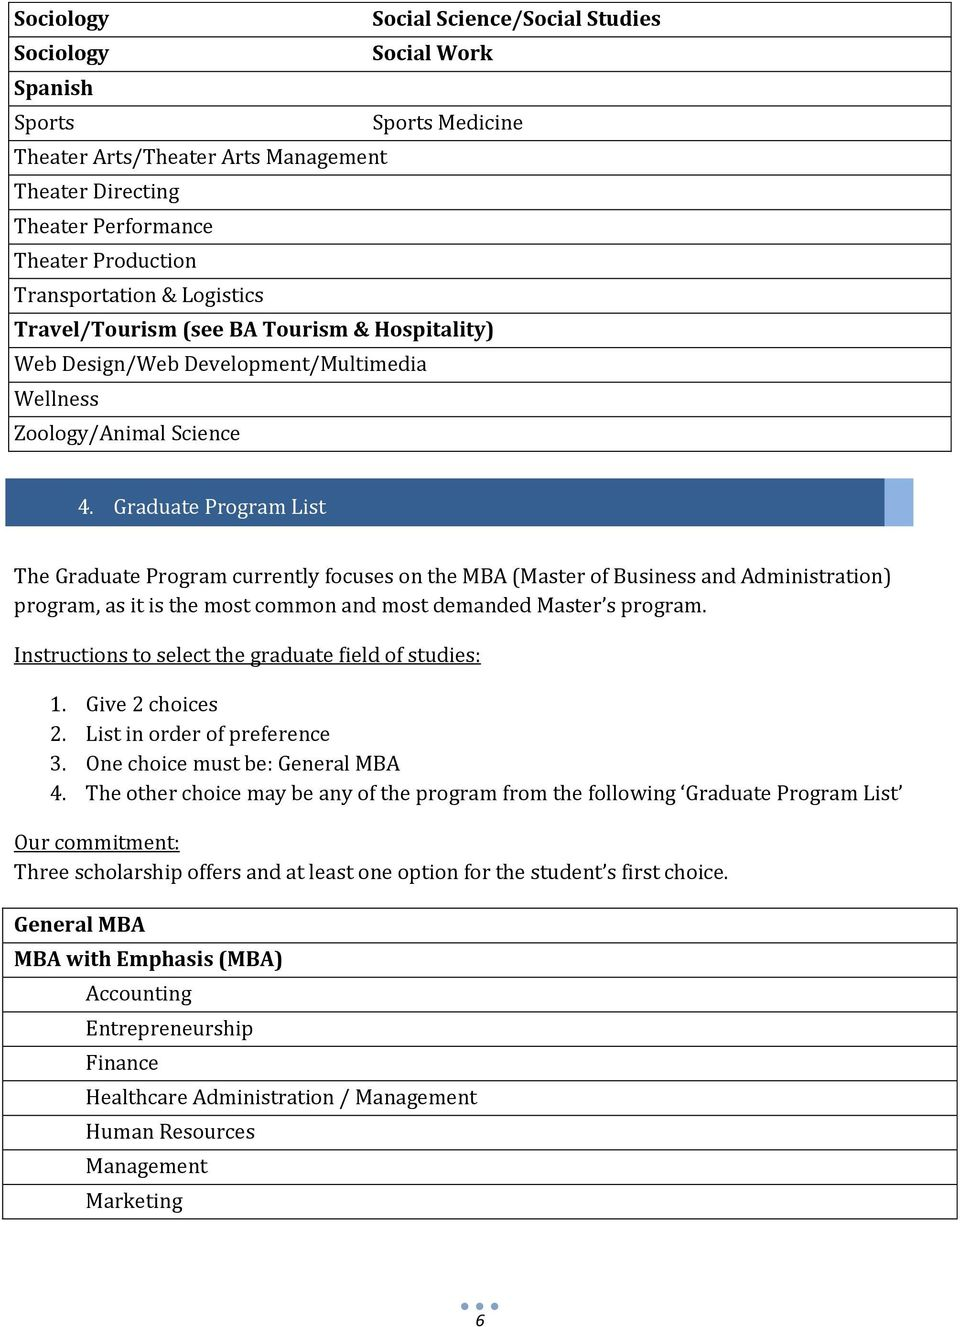 Graduate Program List The Graduate Program currently focuses on the MBA (Master of Business and Administration) program, as it is the most common and most demanded Master s program.